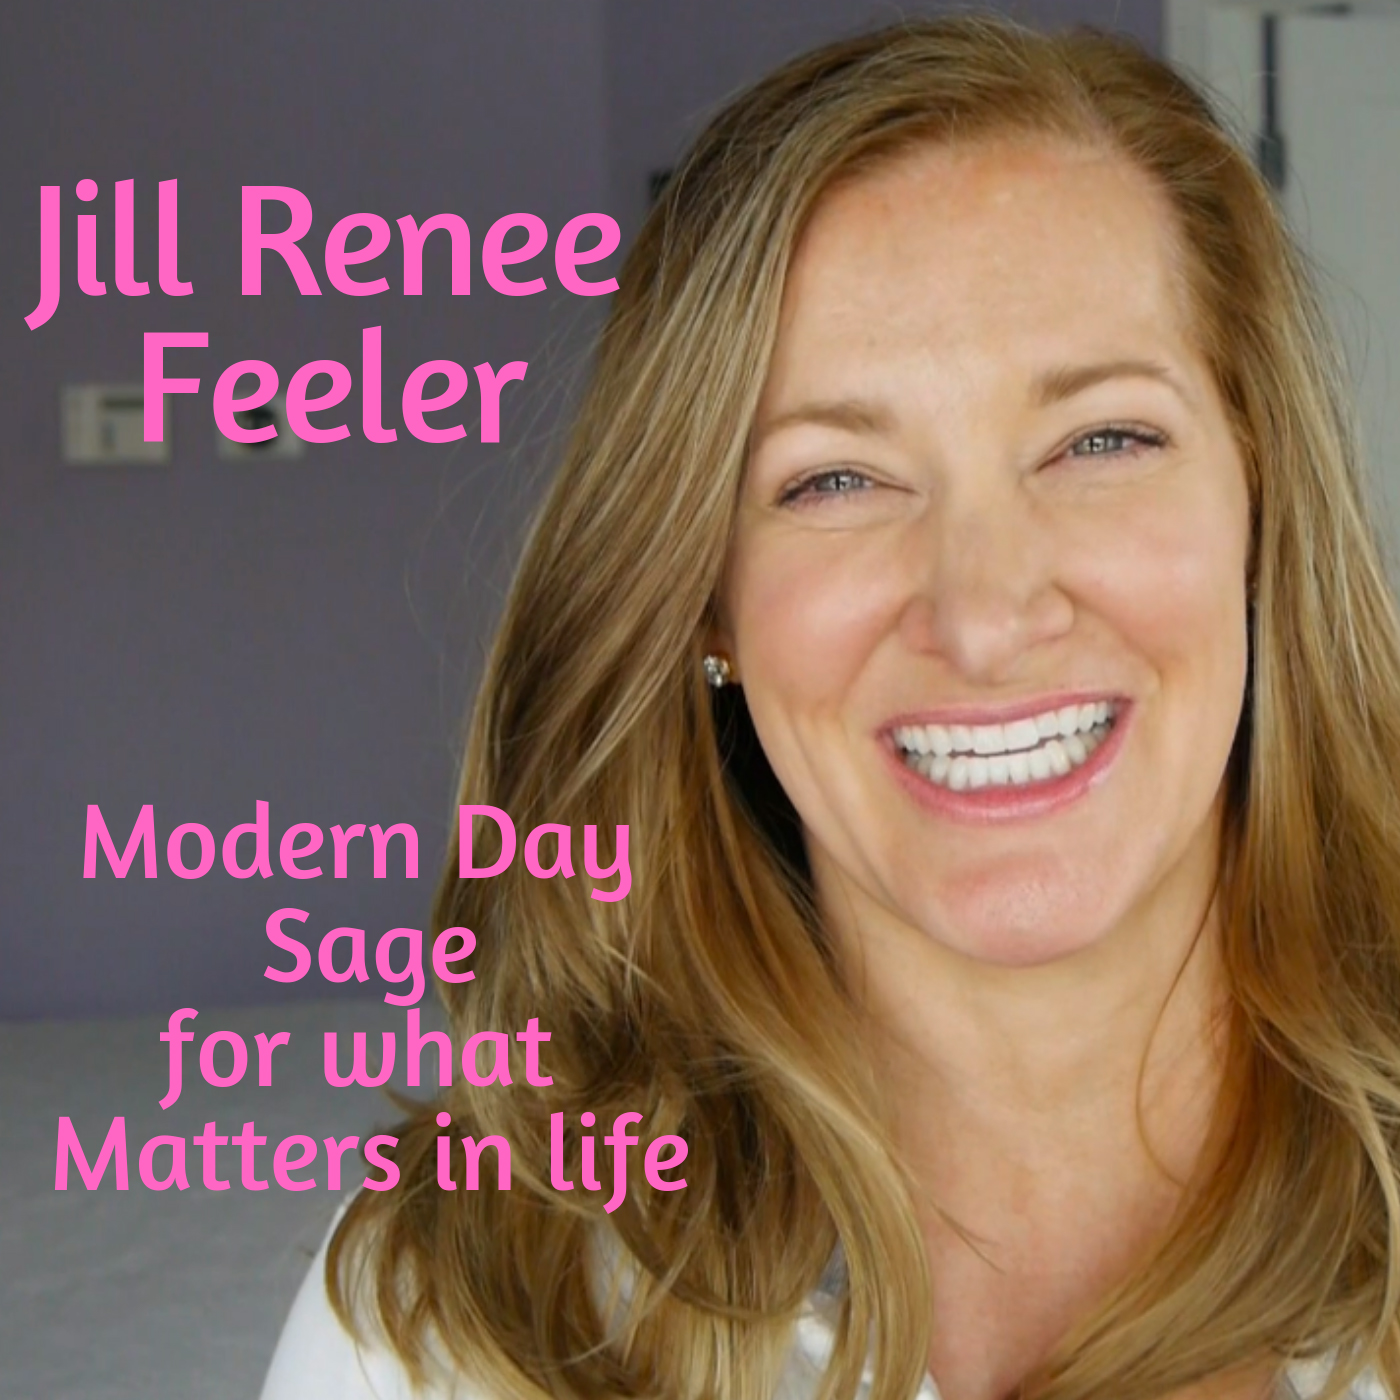 Jill Renee Feeler Gifted Audio Webinars